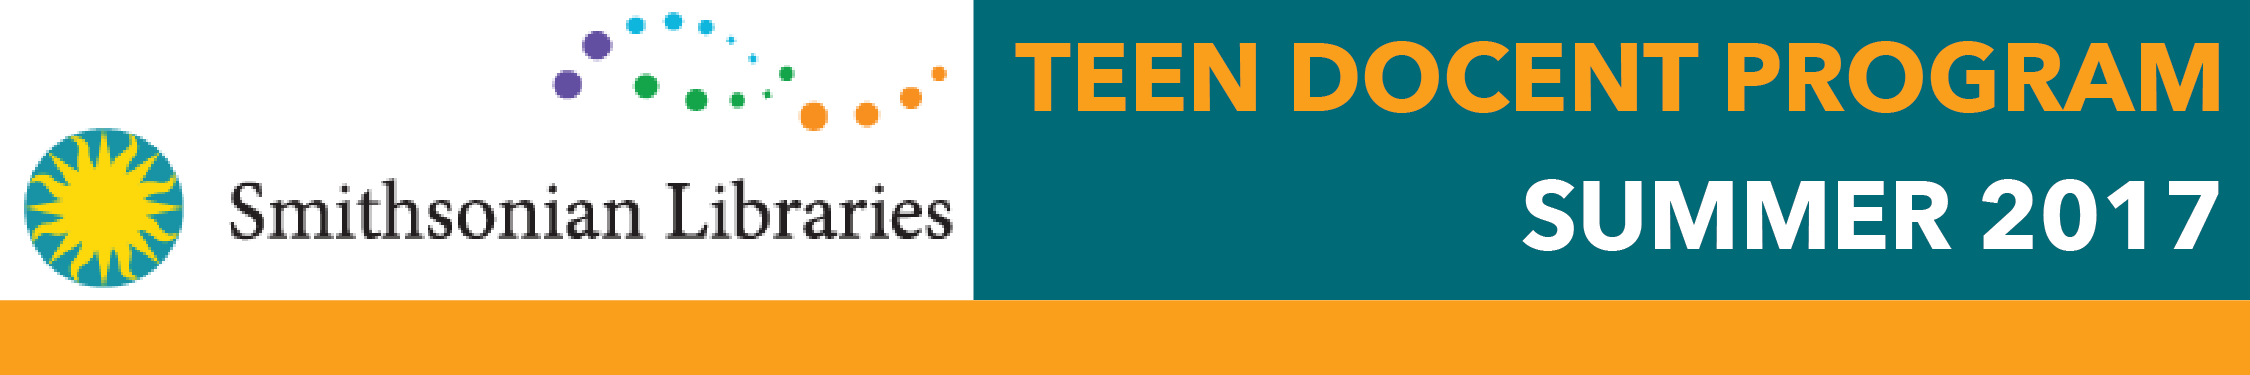 Smithsonian Libraries Teen Council Program